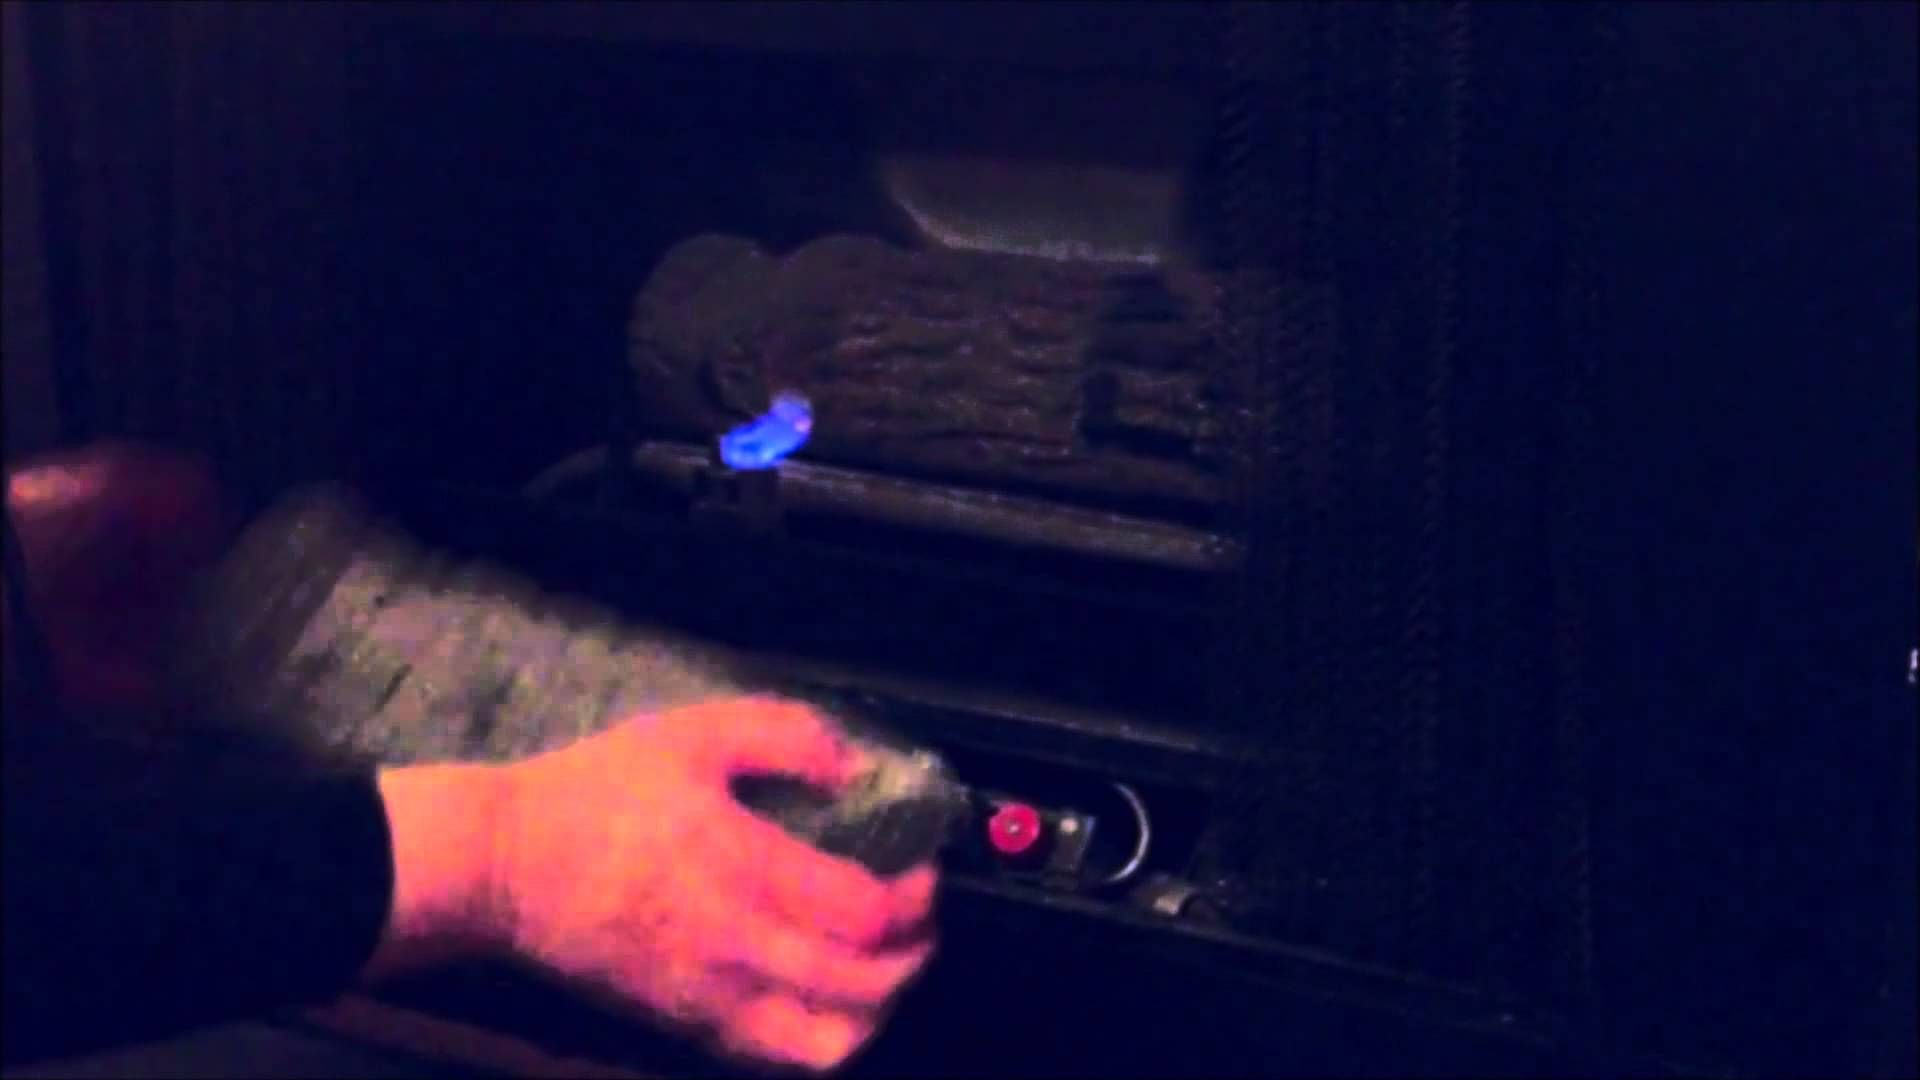 How To Light The Pilot Light Gas Fireplace Https Youtu Be